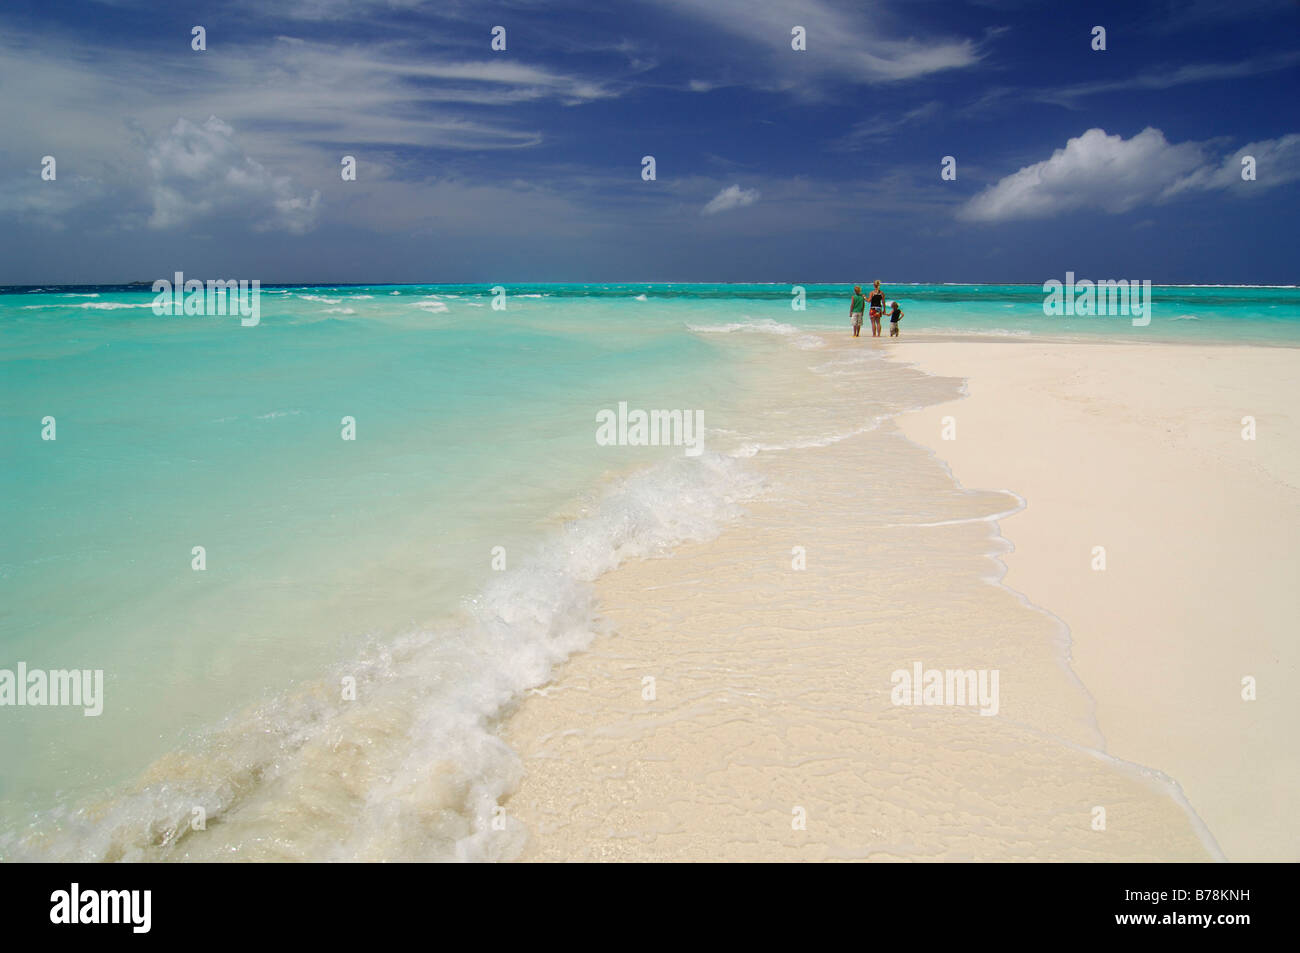 Woman and two children on the beach, Laguna Resort, The Maldives, Indian Ocean Stock Photo